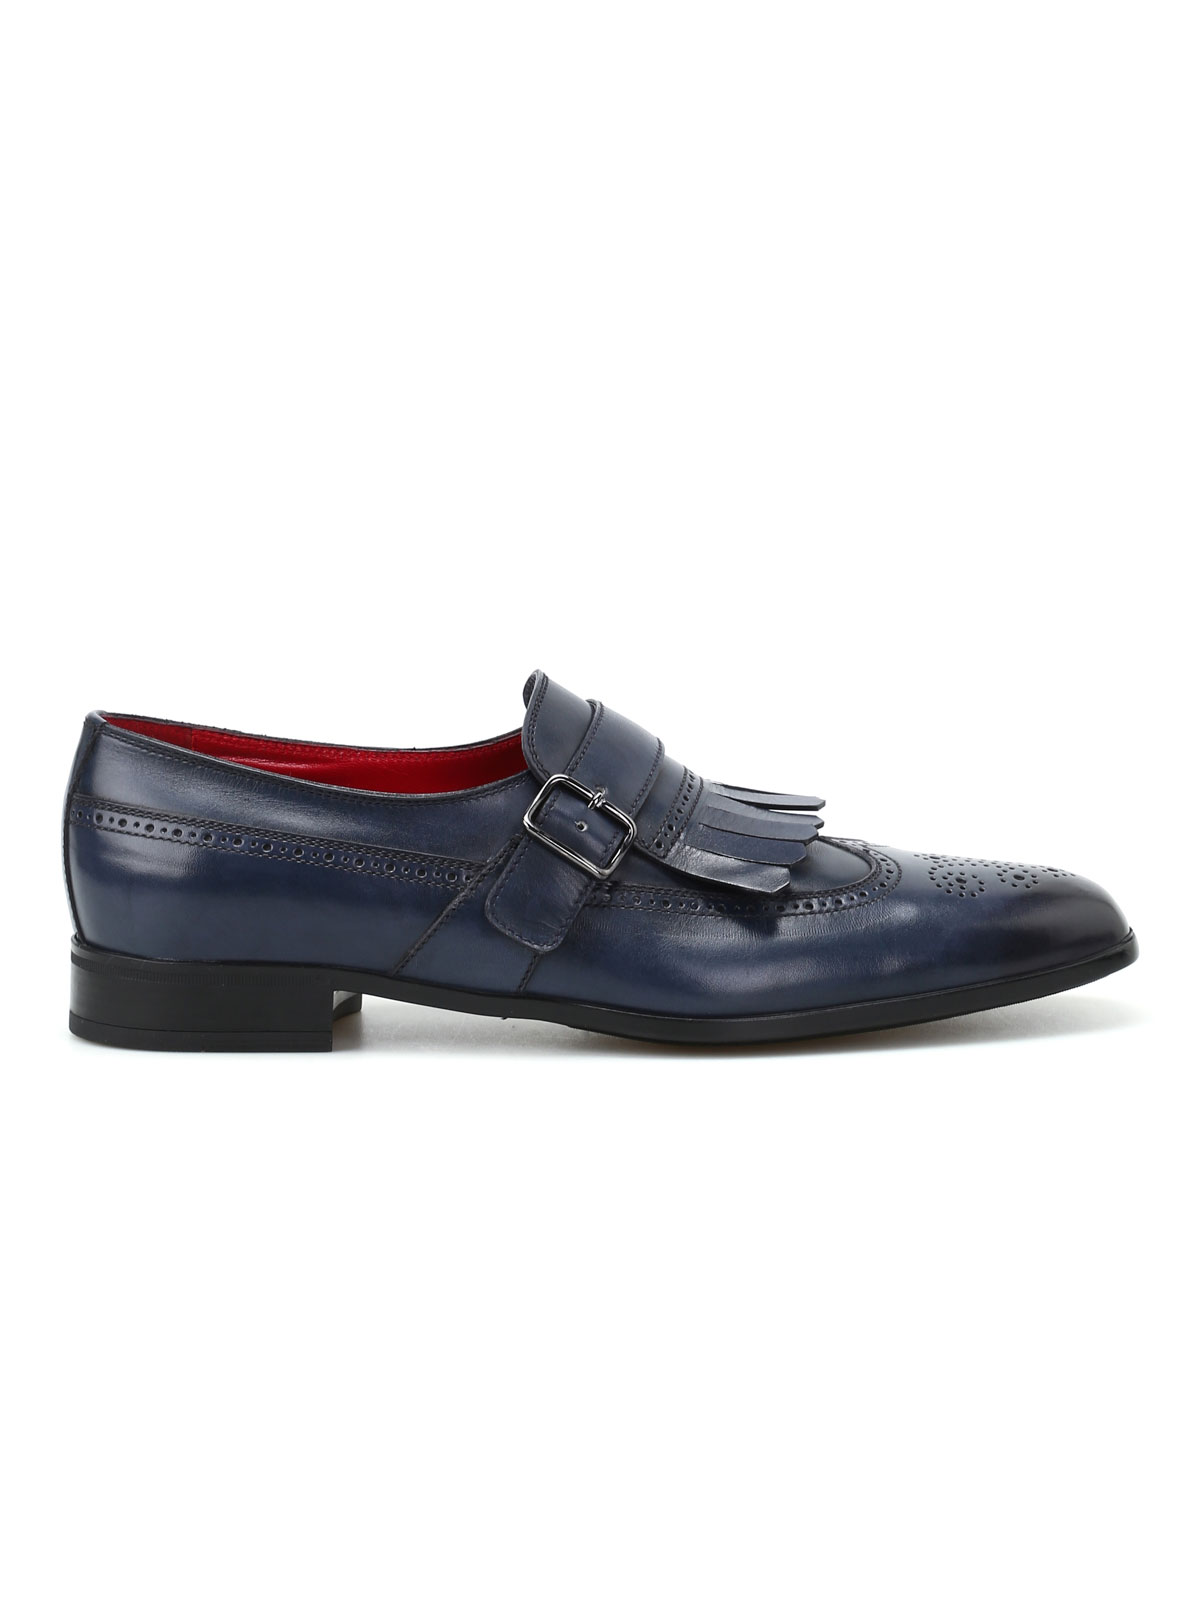 Picture of BARRETT | FOOTWEAR Monk strap brogue blu in pelle